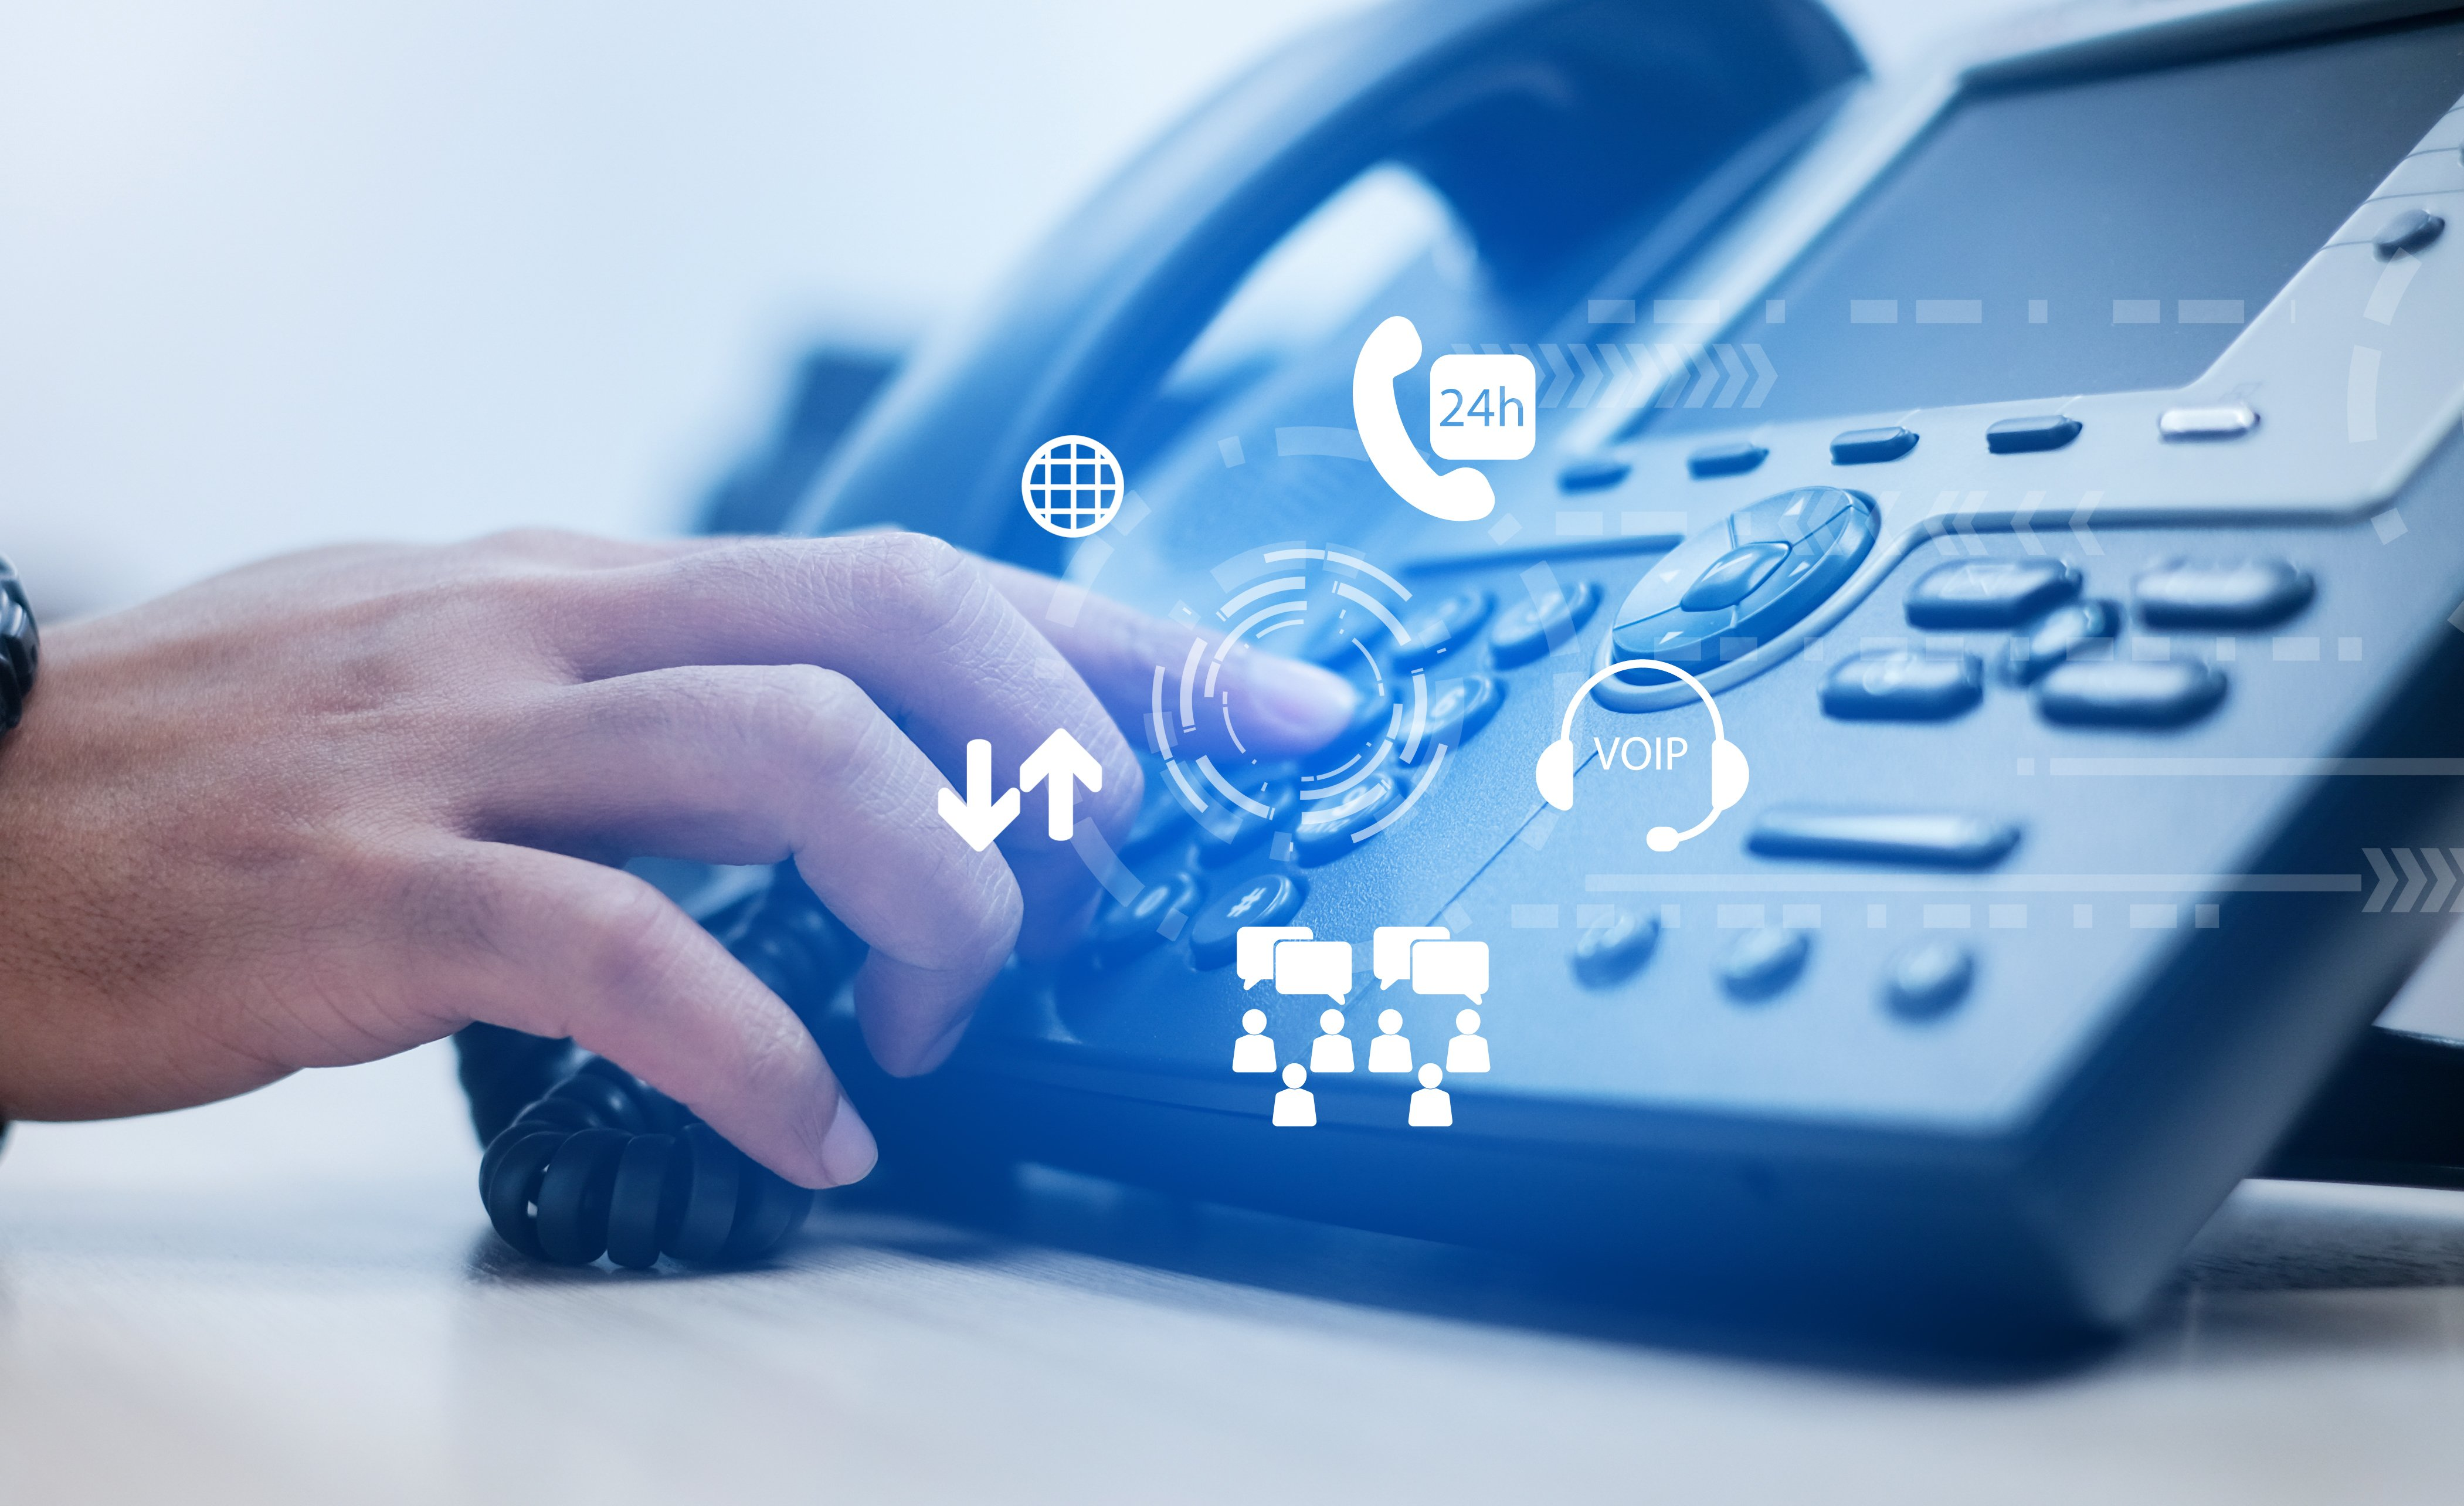 Is VoIP Available for Home Use?